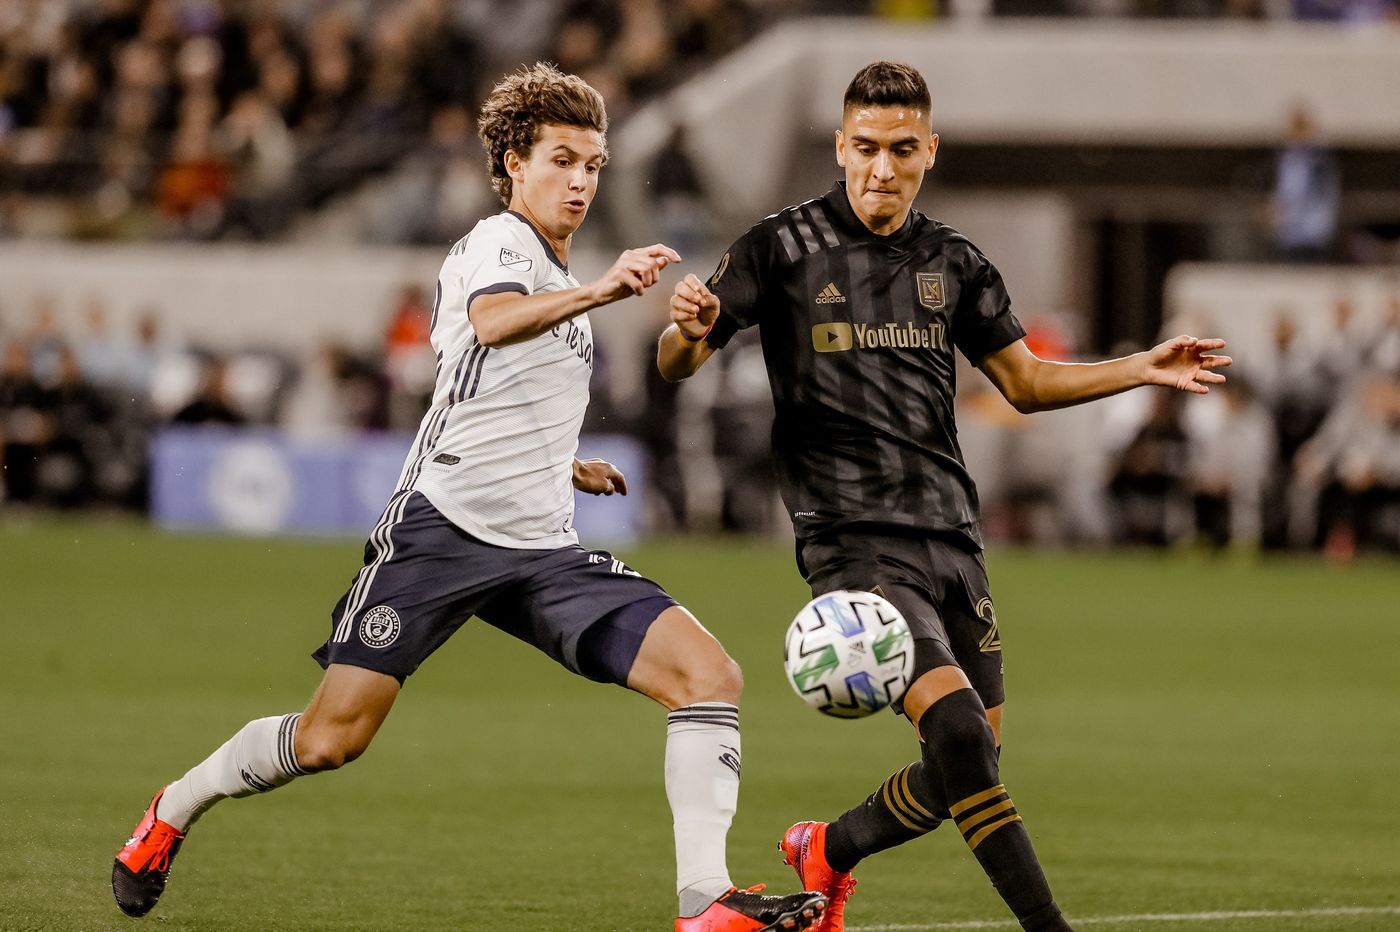 Santos, Glesnes, Aaronson goals give Union stunning 3-3 tie at LAFC